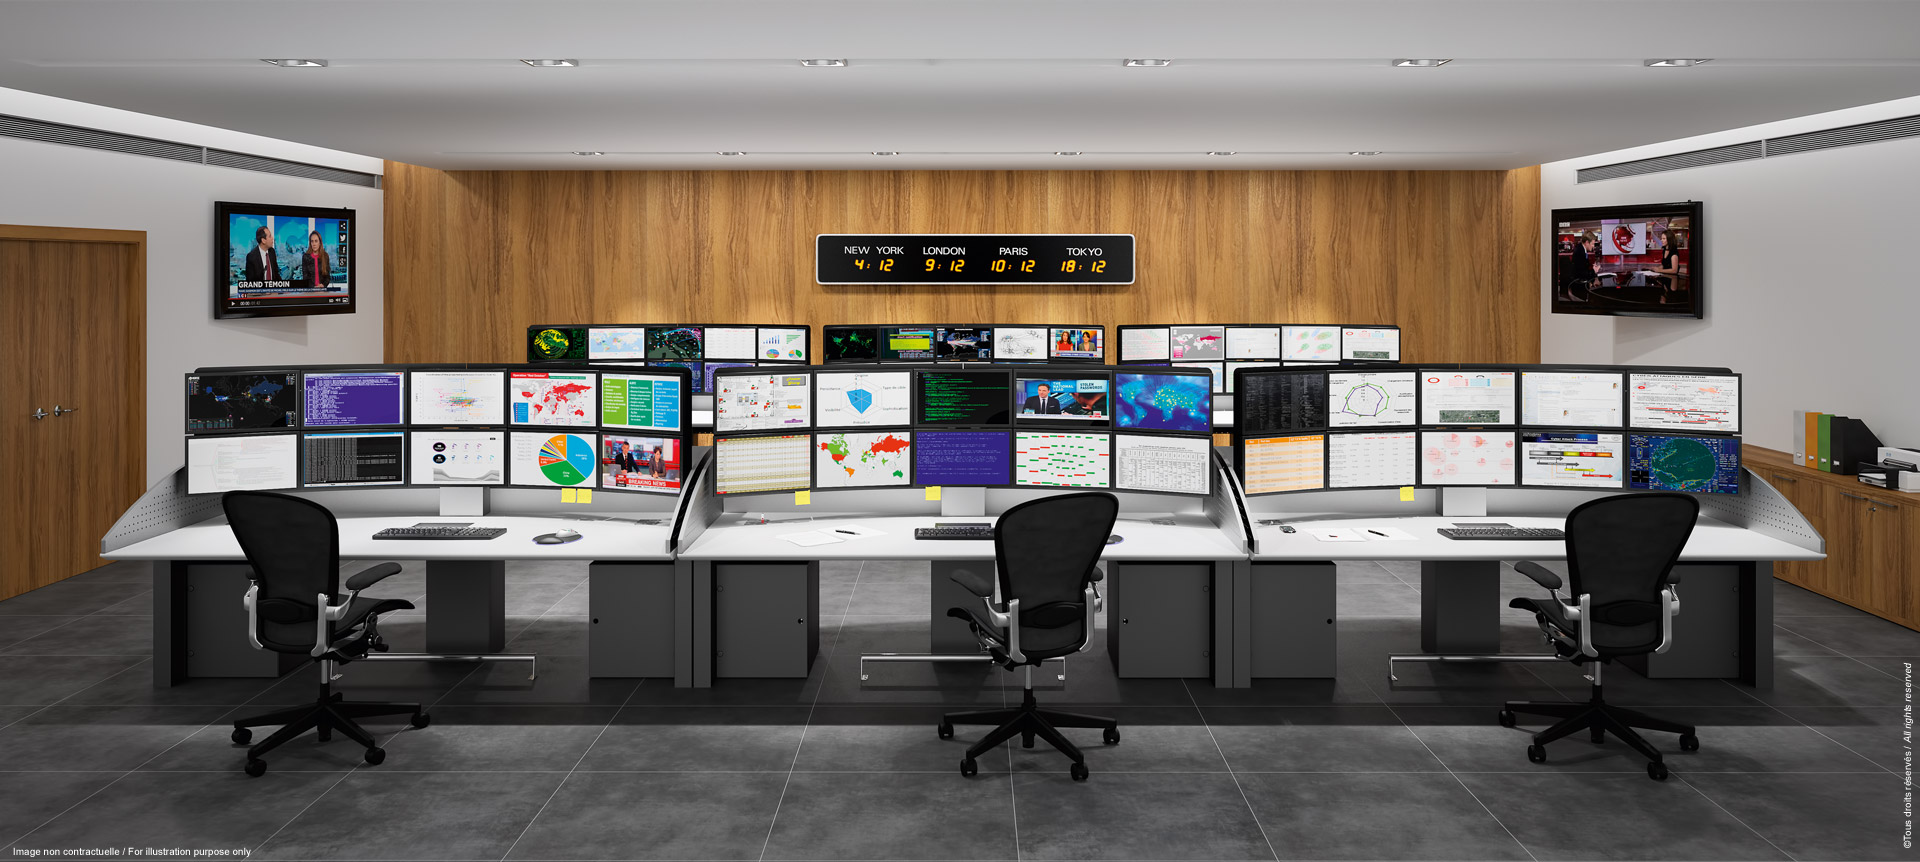 I-KUBE - Multiscreen and ergonomic workstation for control and trading room